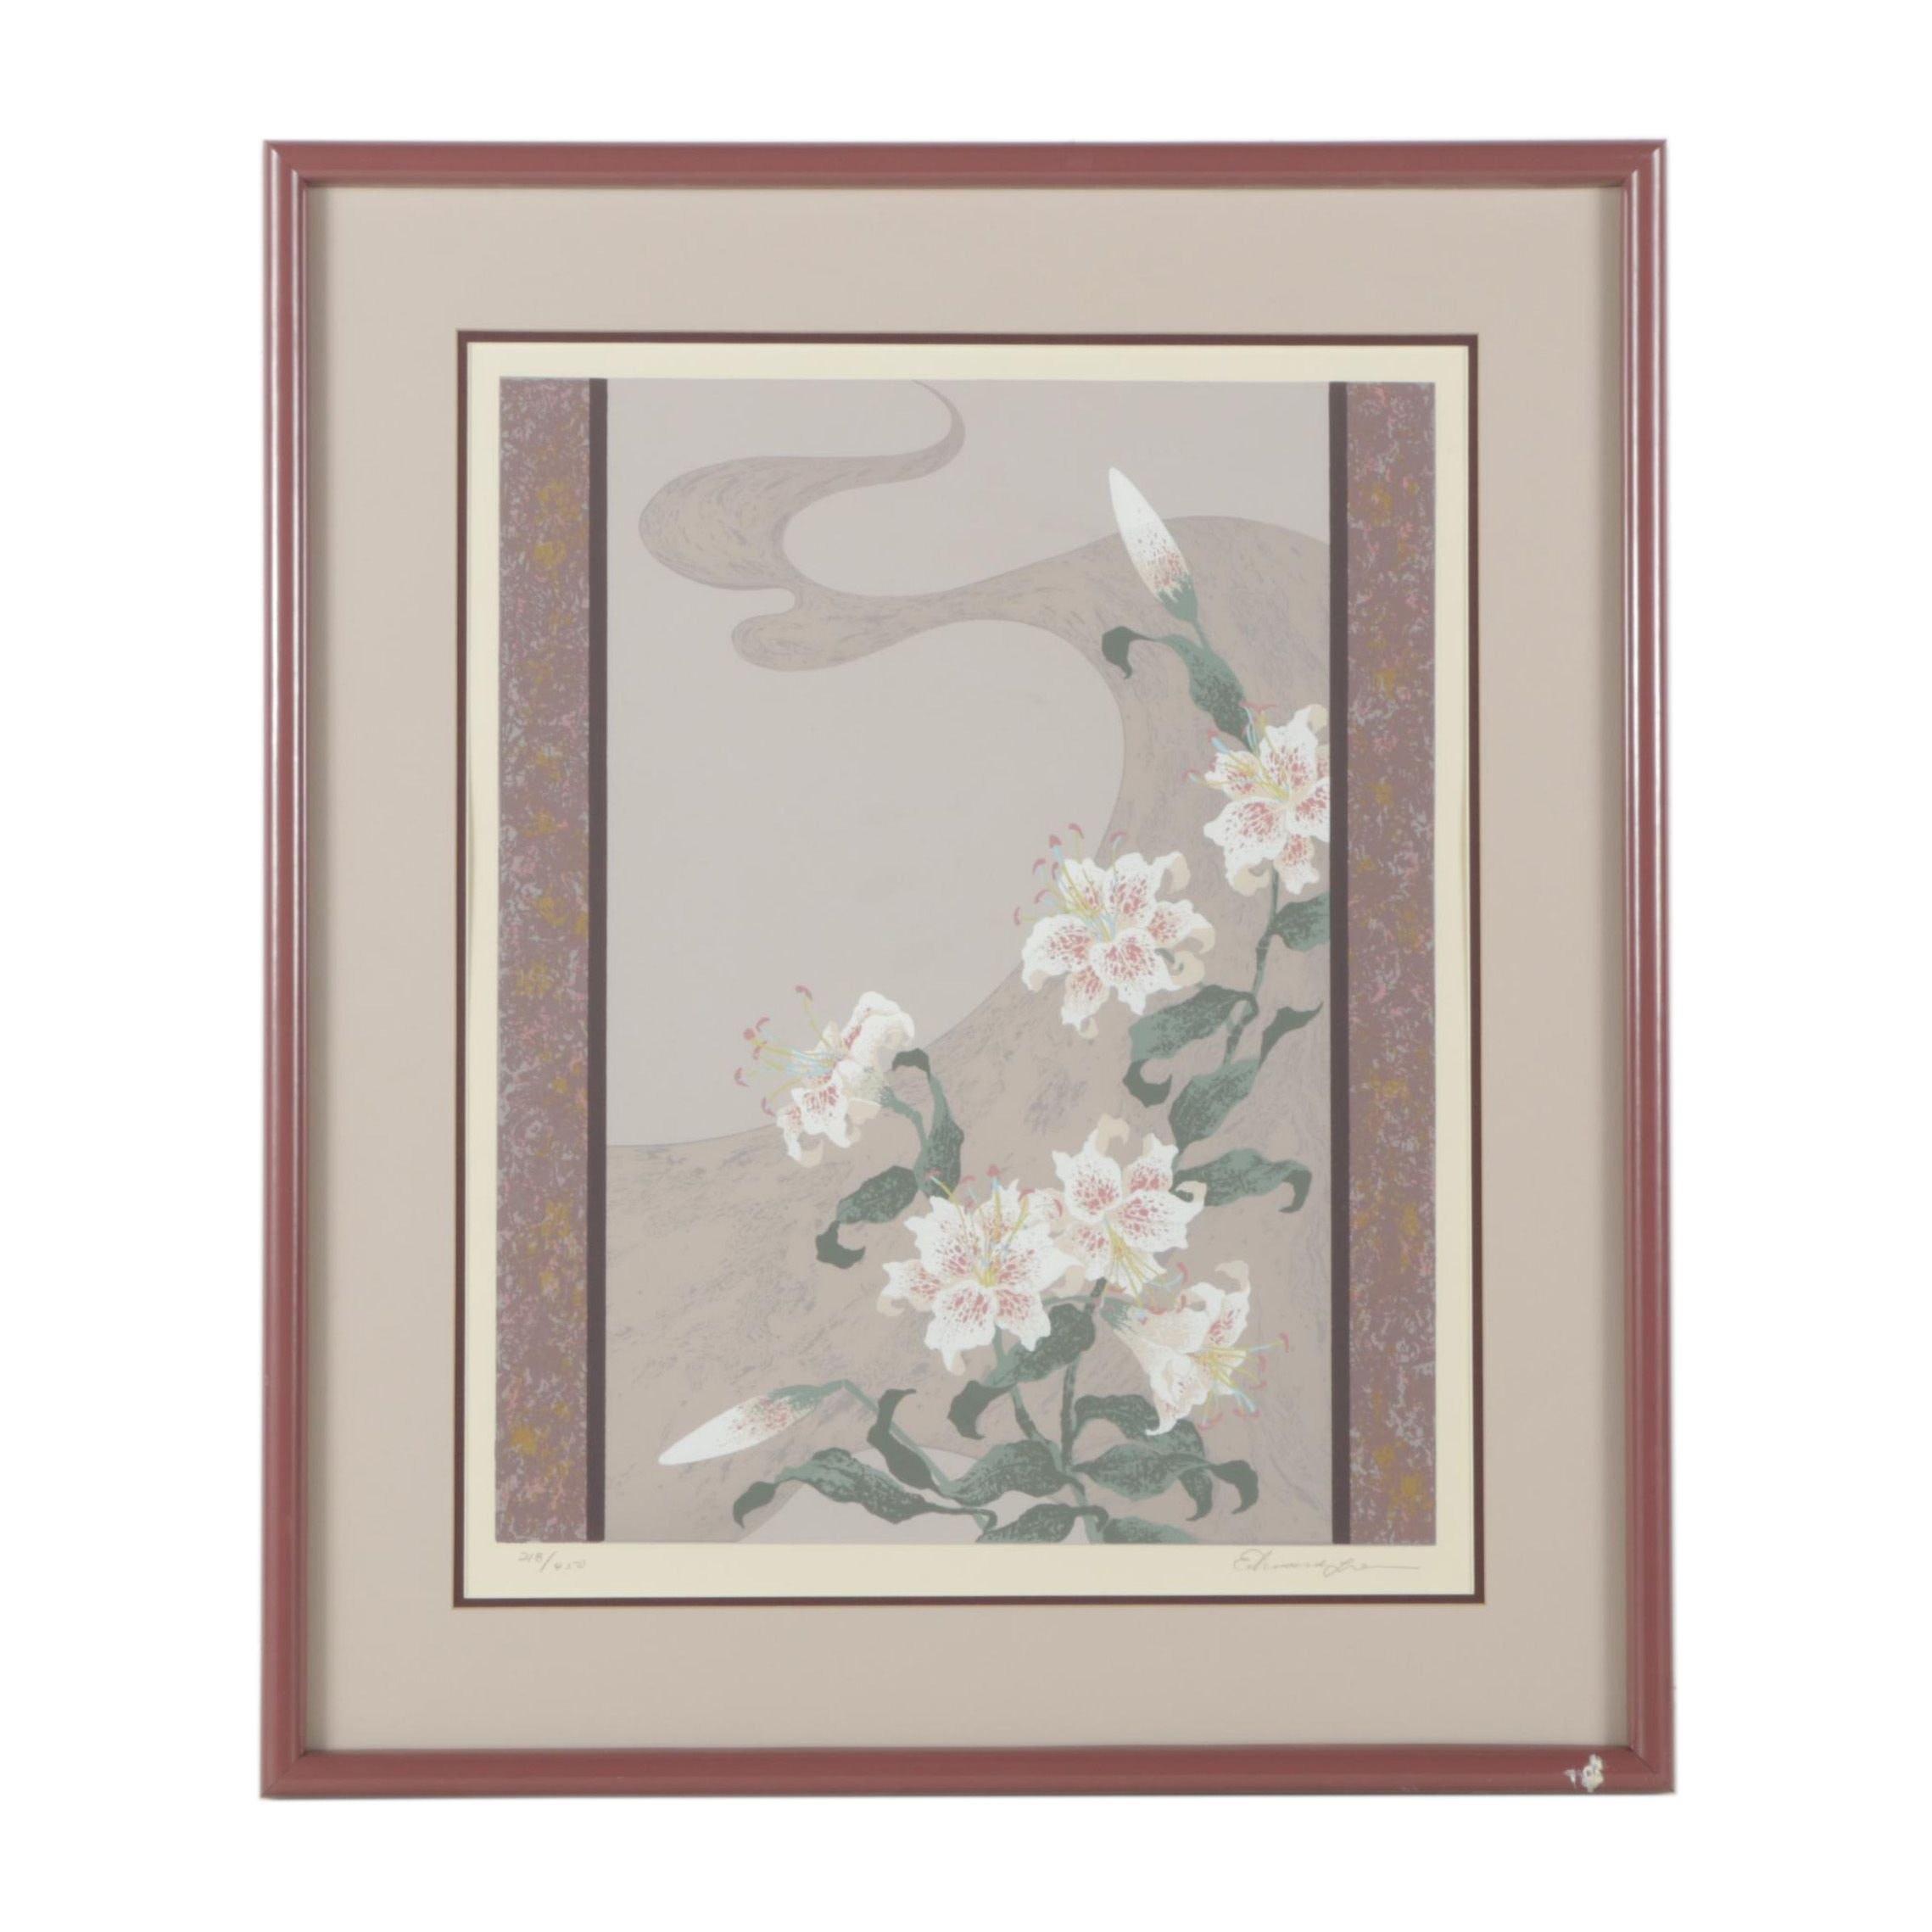 Limited Edition Serigraph of Flowers